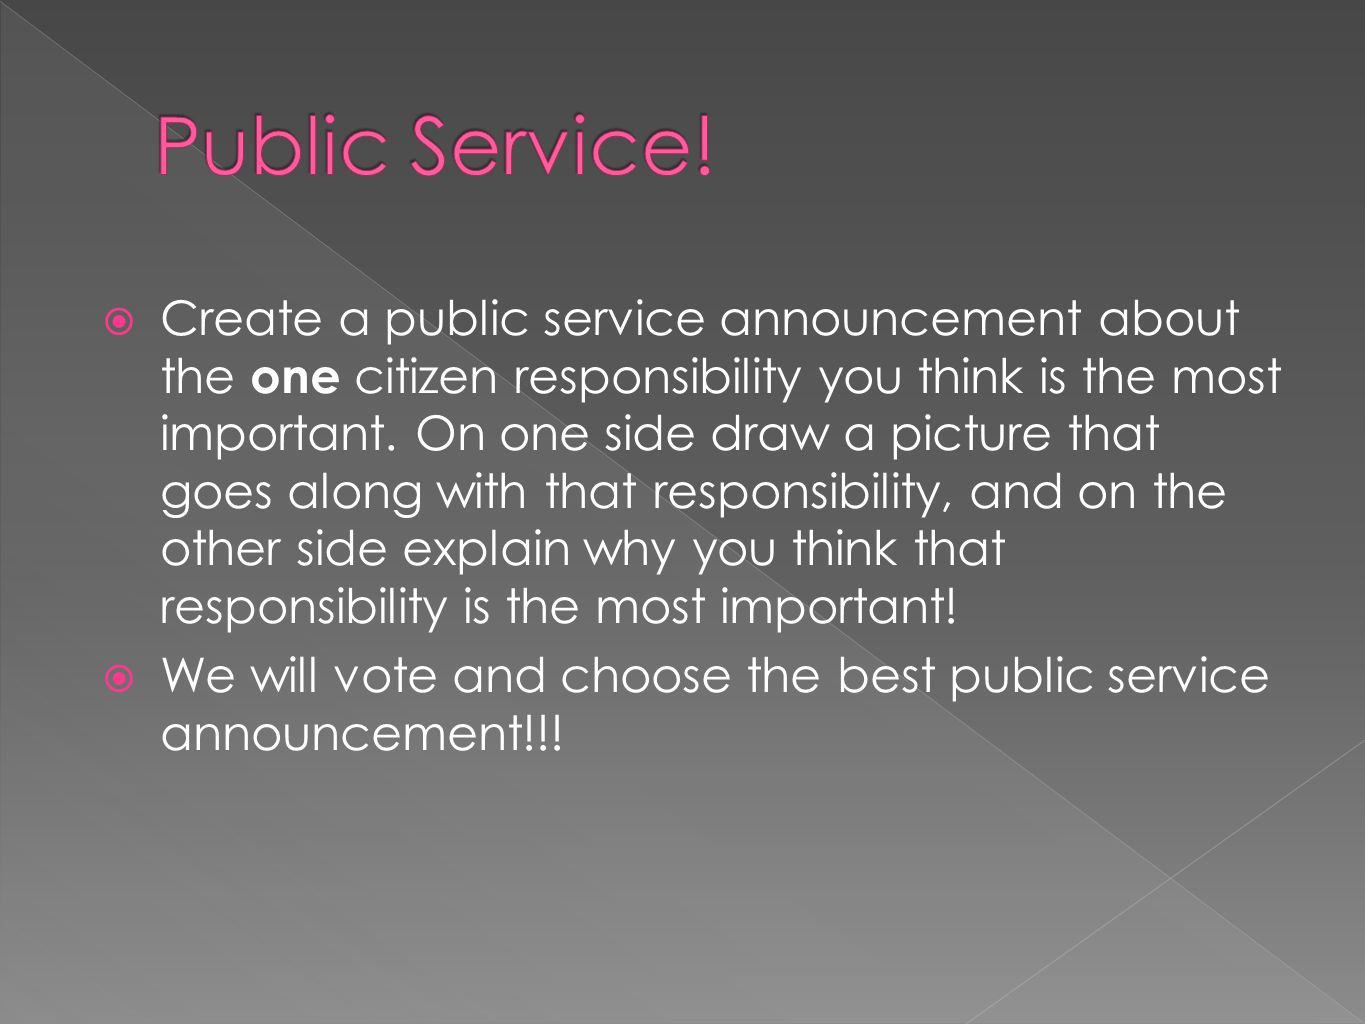  Create a public service announcement about the one citizen responsibility you think is the most important.